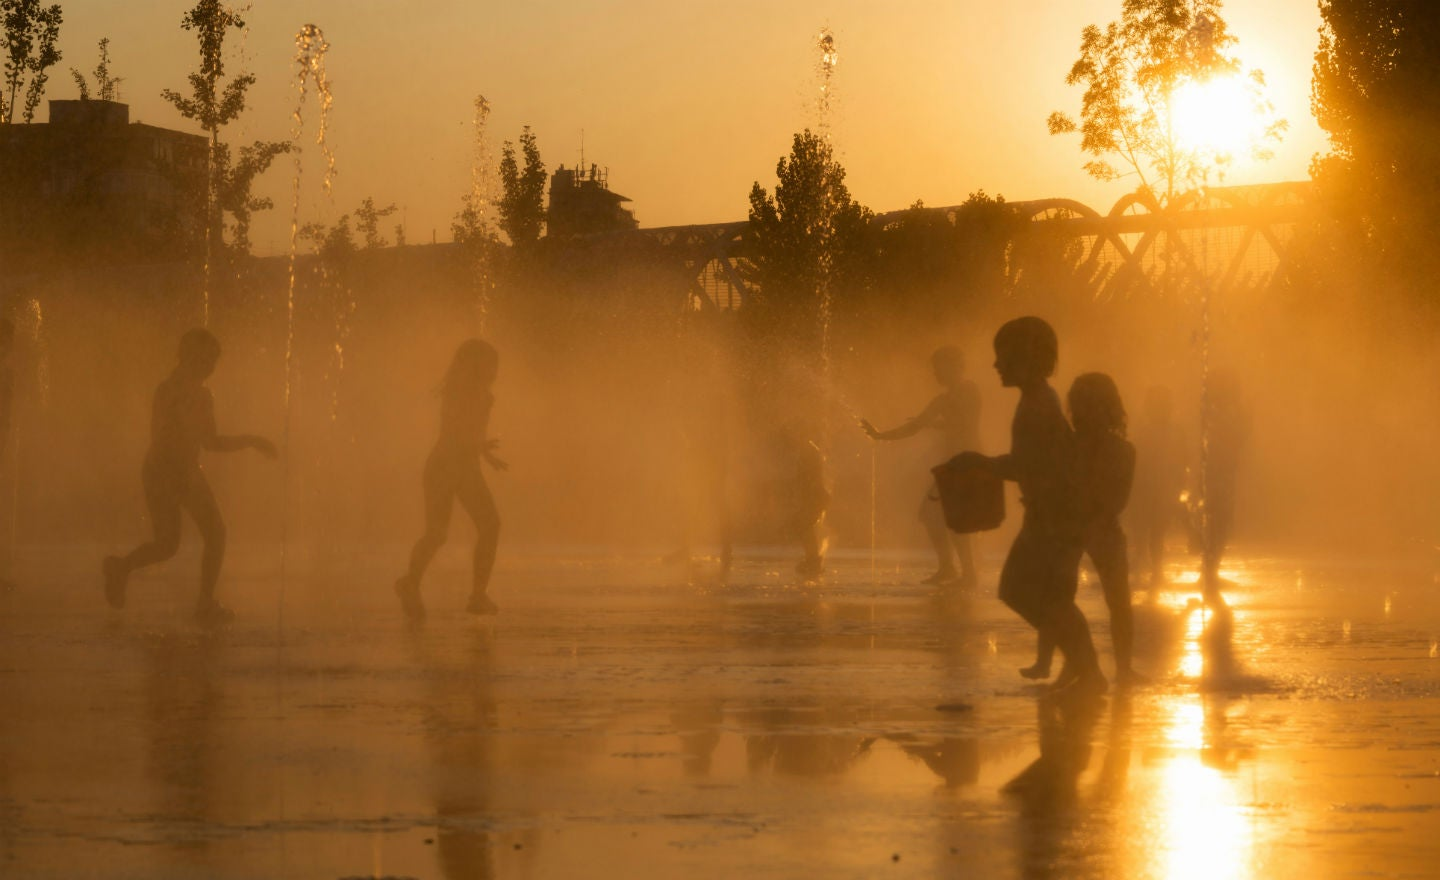 2019 likely to be the second hottest year ever recorded